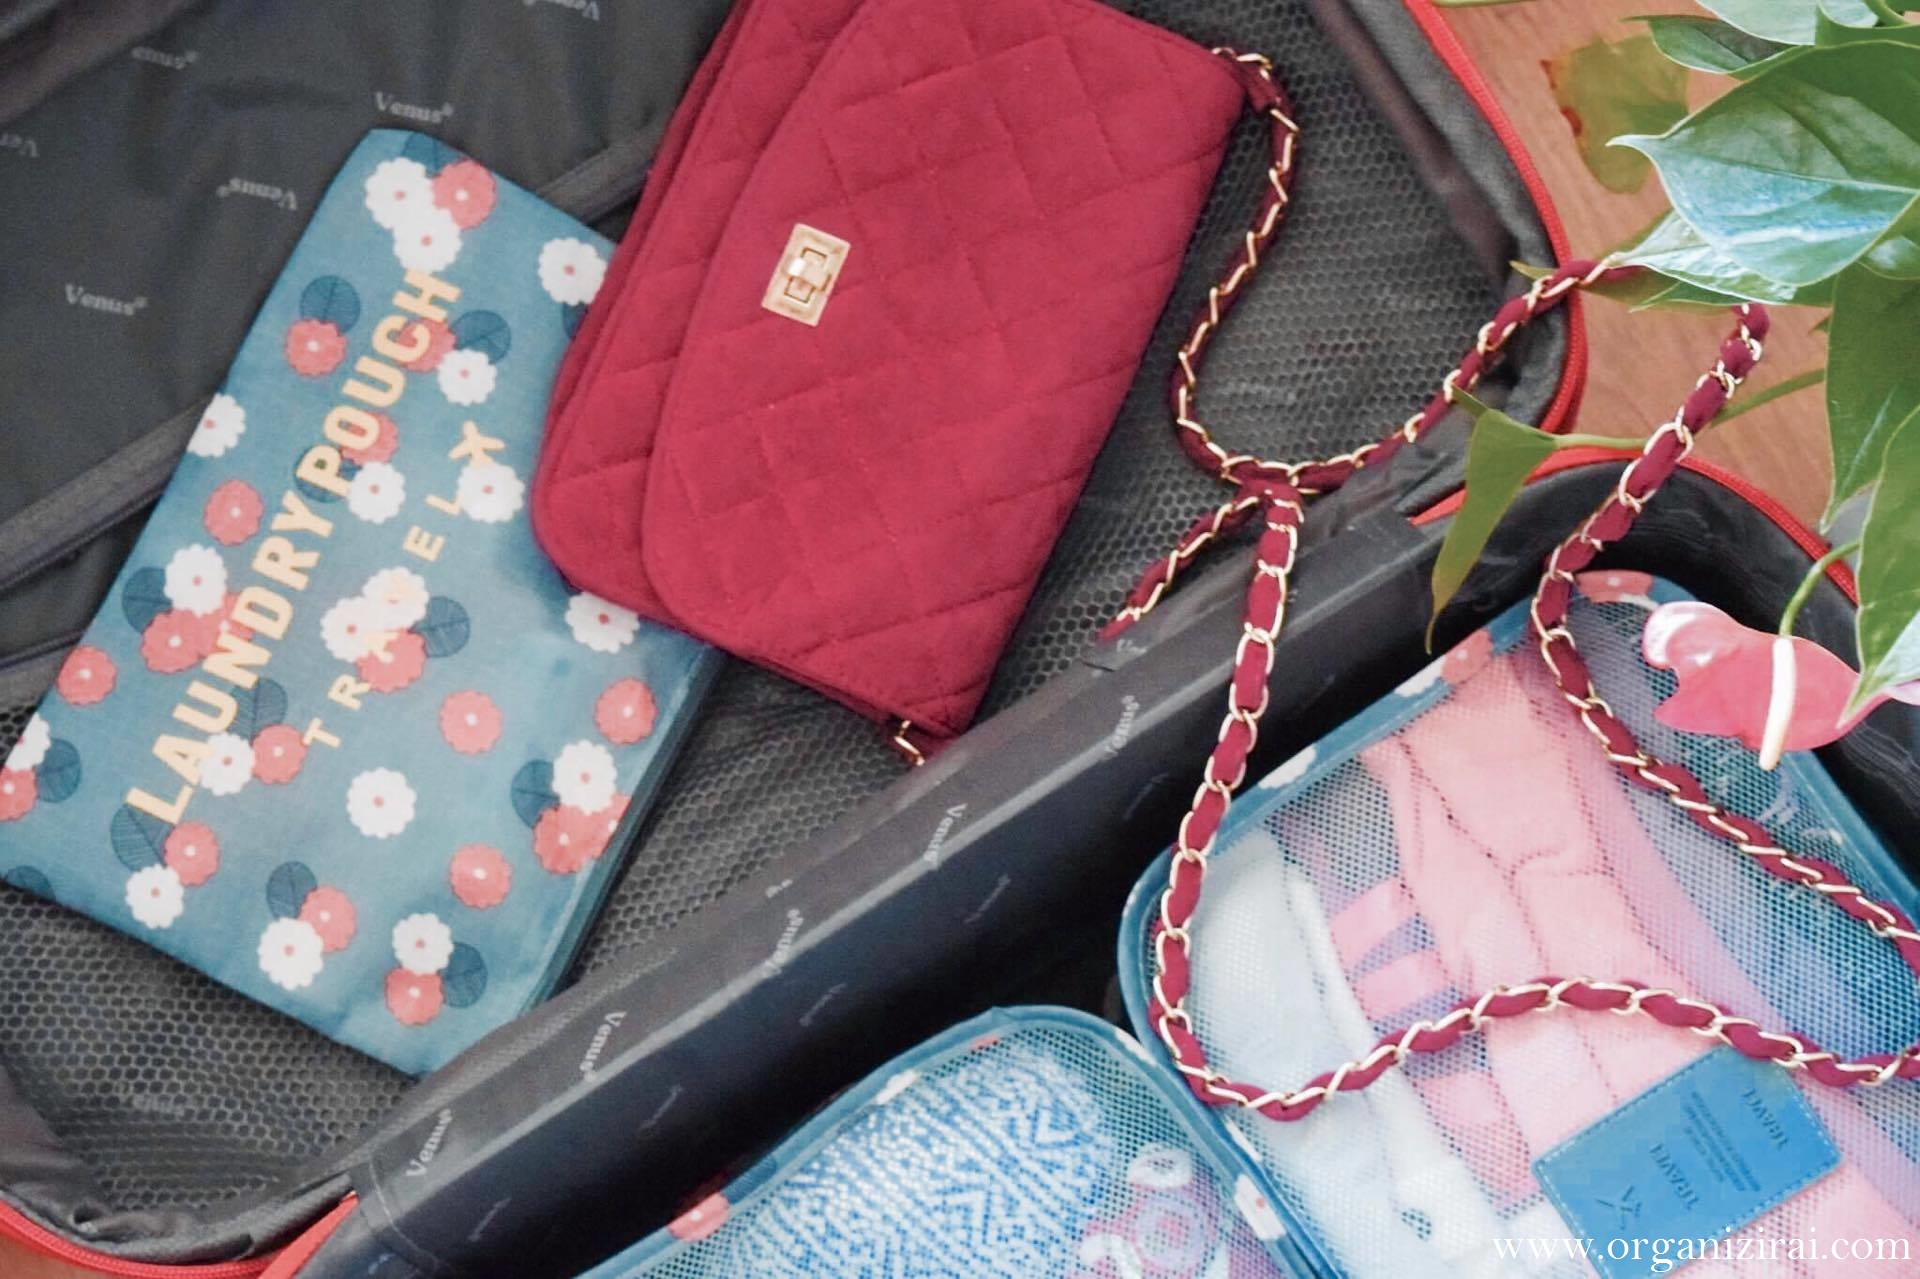 How-to-pack-a-carry-on-luggage-suitcase-packing-tip-organizirai.com-blog-best-bulgarian-bloggers-pink-purse